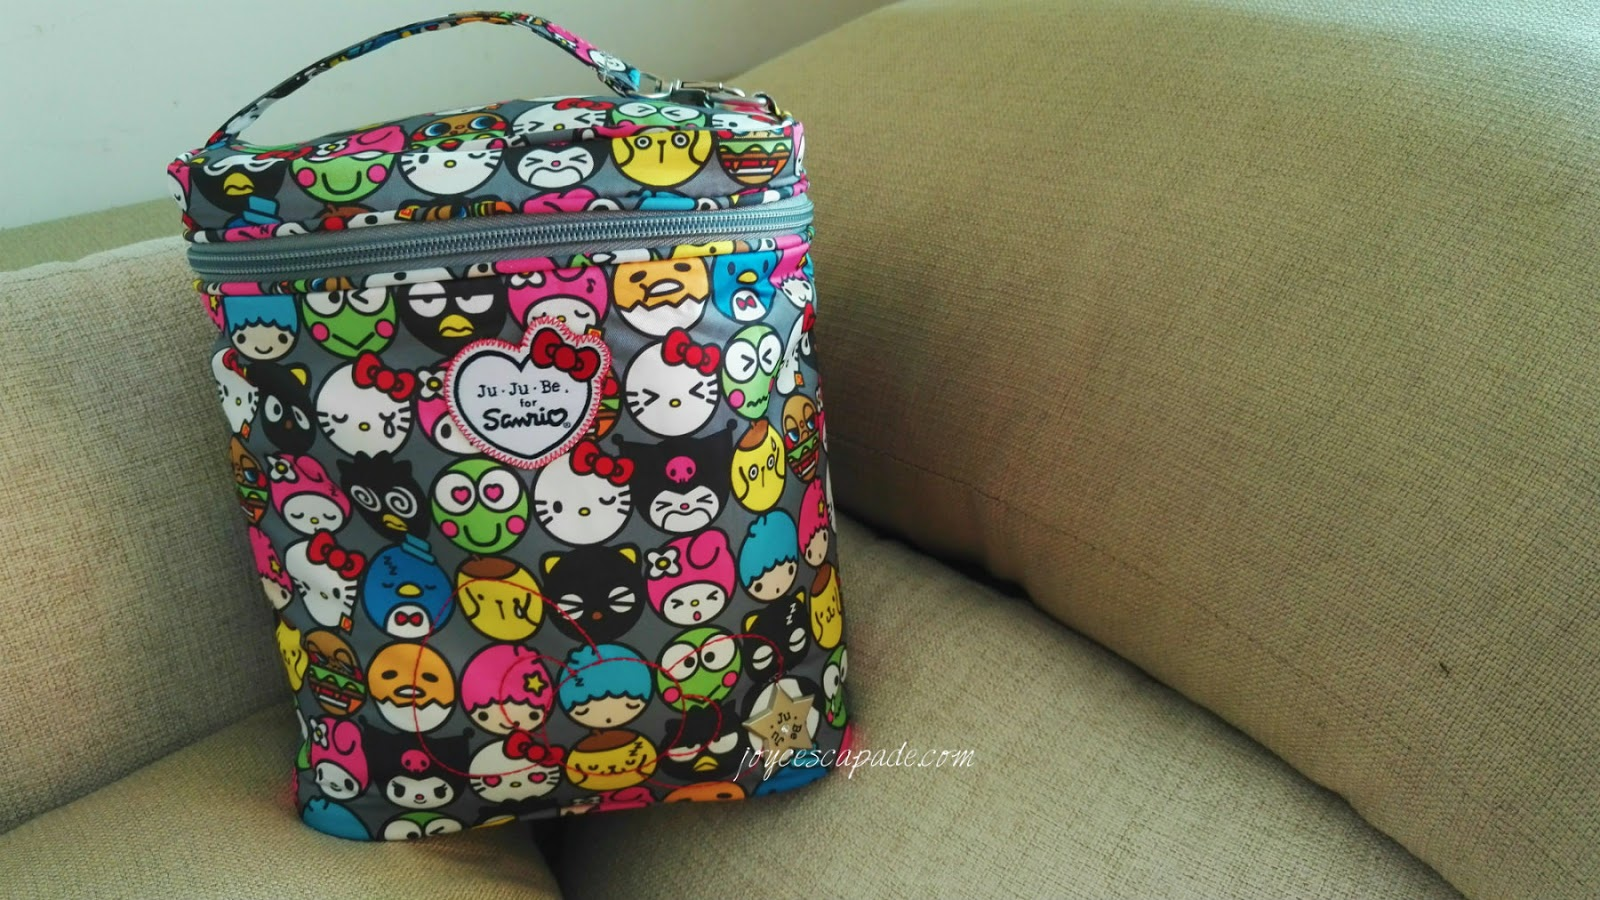 Packing Jujube Hello Friends Fuel Cell As Babys Lunch Bag Joy N Coin Purse Sometimes I Replace The Cloth Bibs With Super Toki Be Neat Bib Also Like To Bring Out Offsprings Travel Wet Wipes This Is How